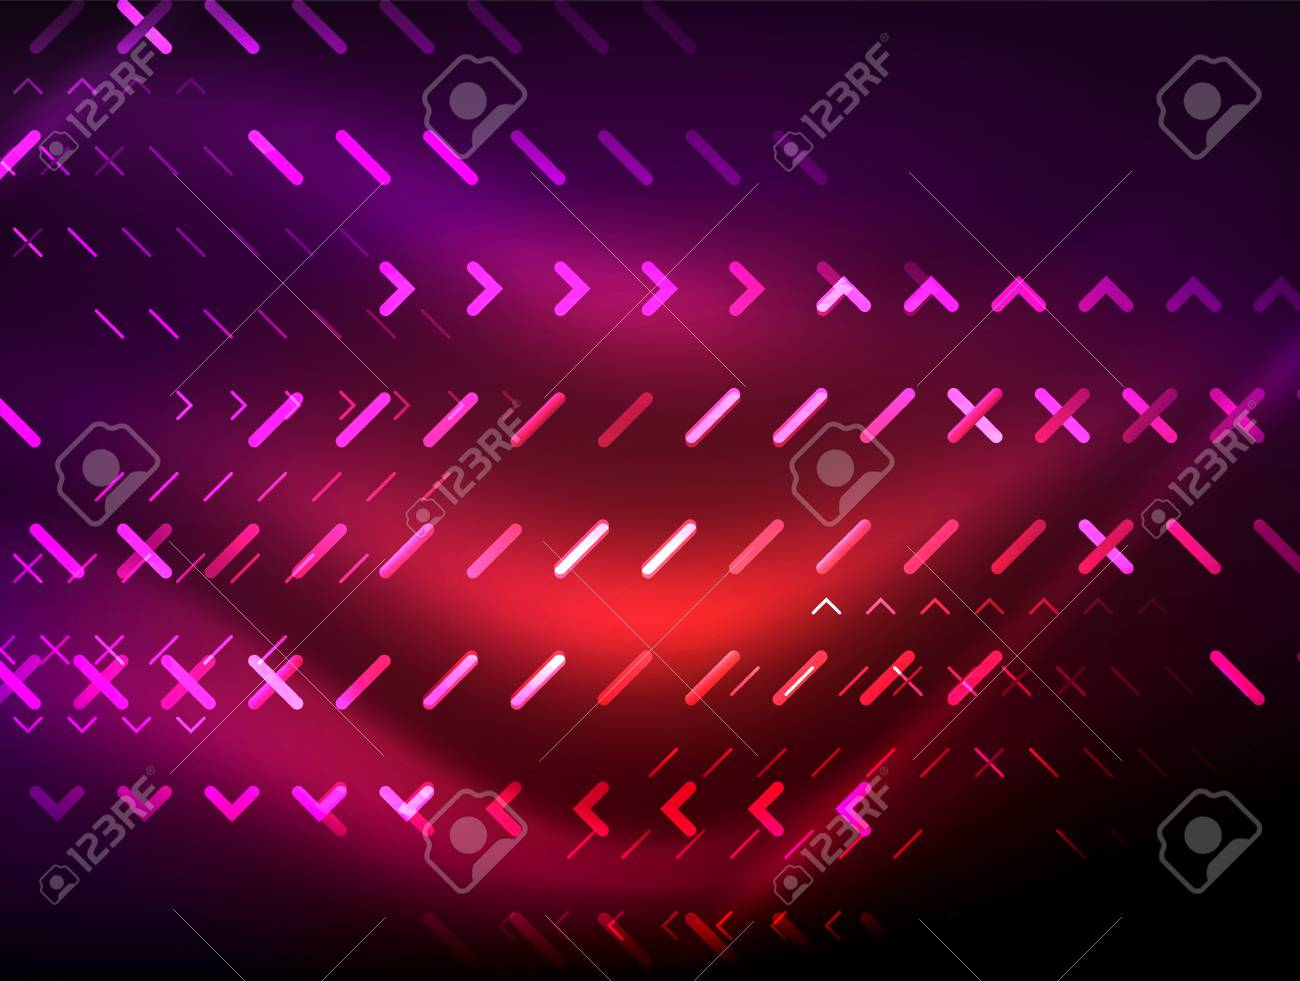 Futuristic Neon Lights On Dark Background Digital Abstract Techno